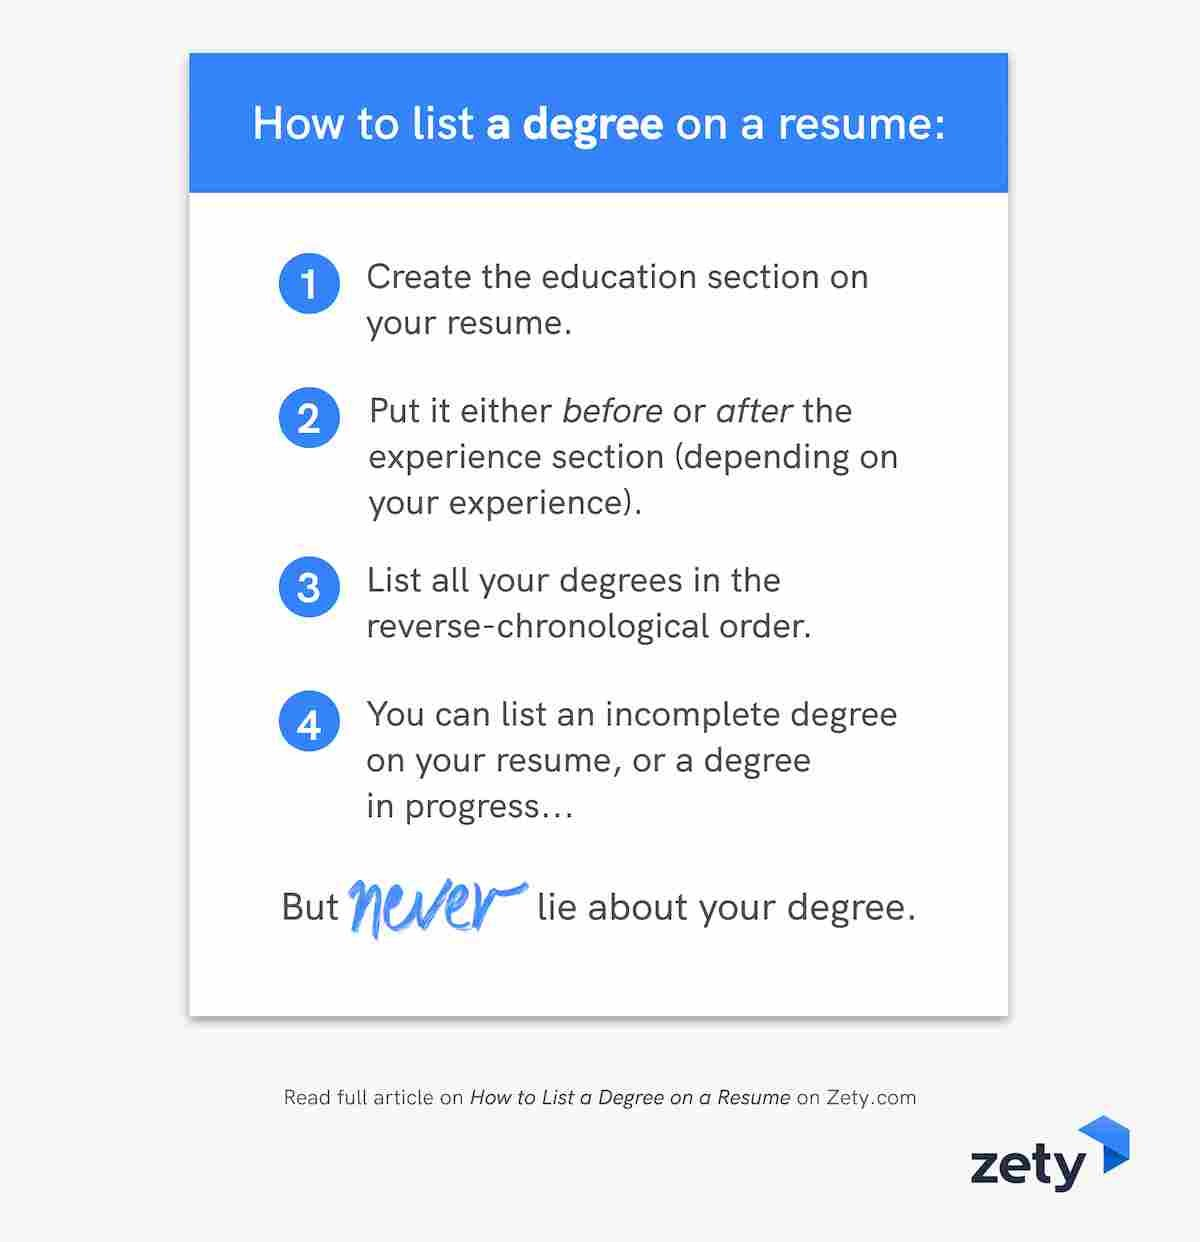 How to list a degree on a resume: summary